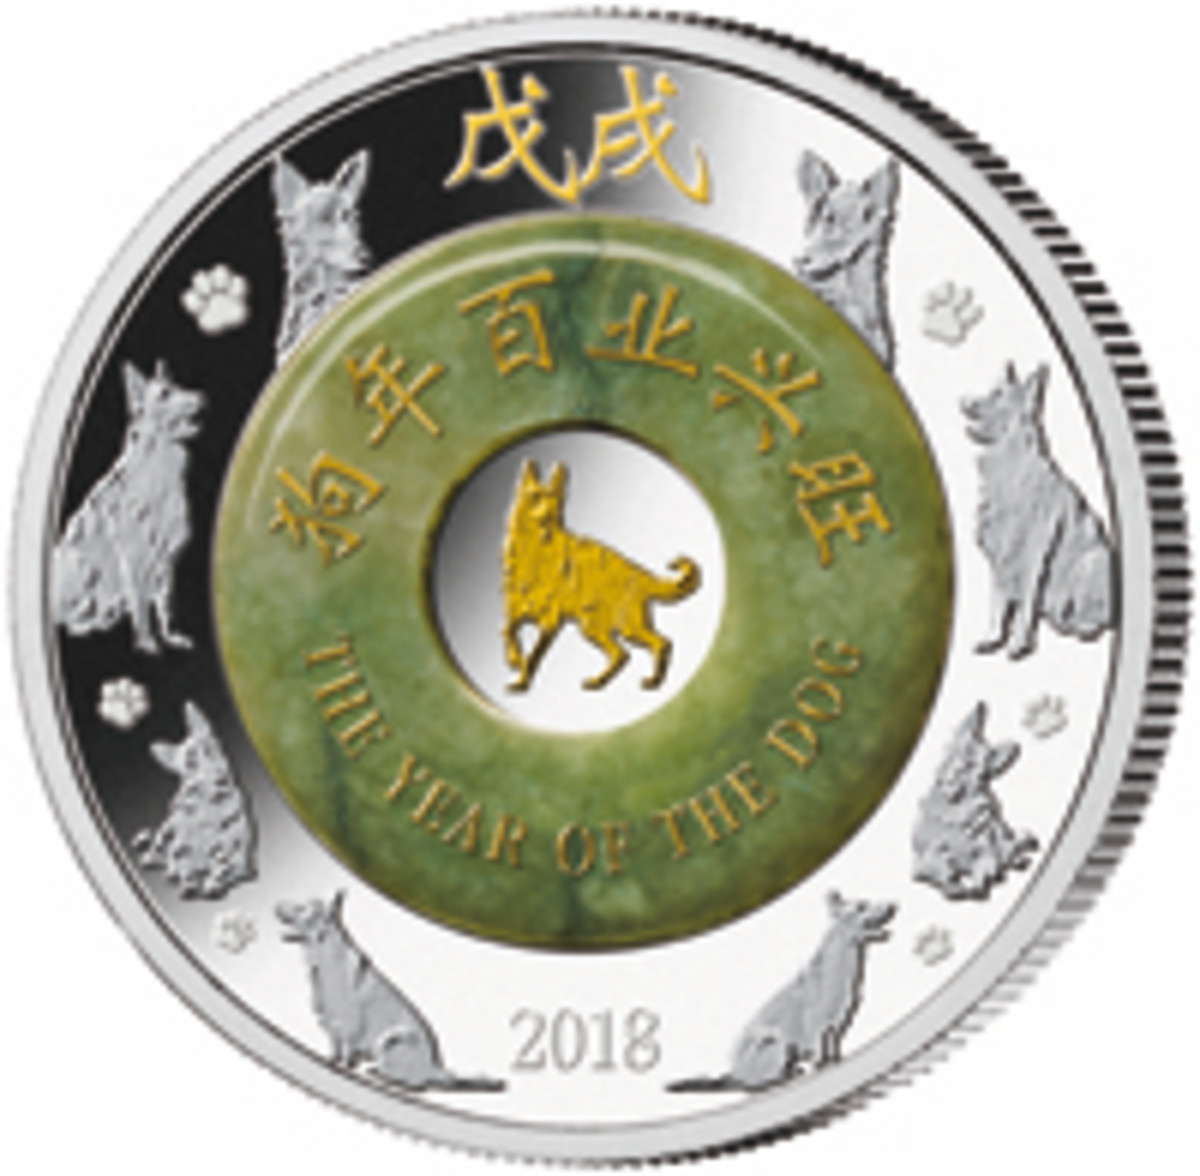 Reverse of Laos' silver proof Year of the Dog 2000 kip with its central jade core. (Image MDM Münzhandelsgesellschaft mbH)